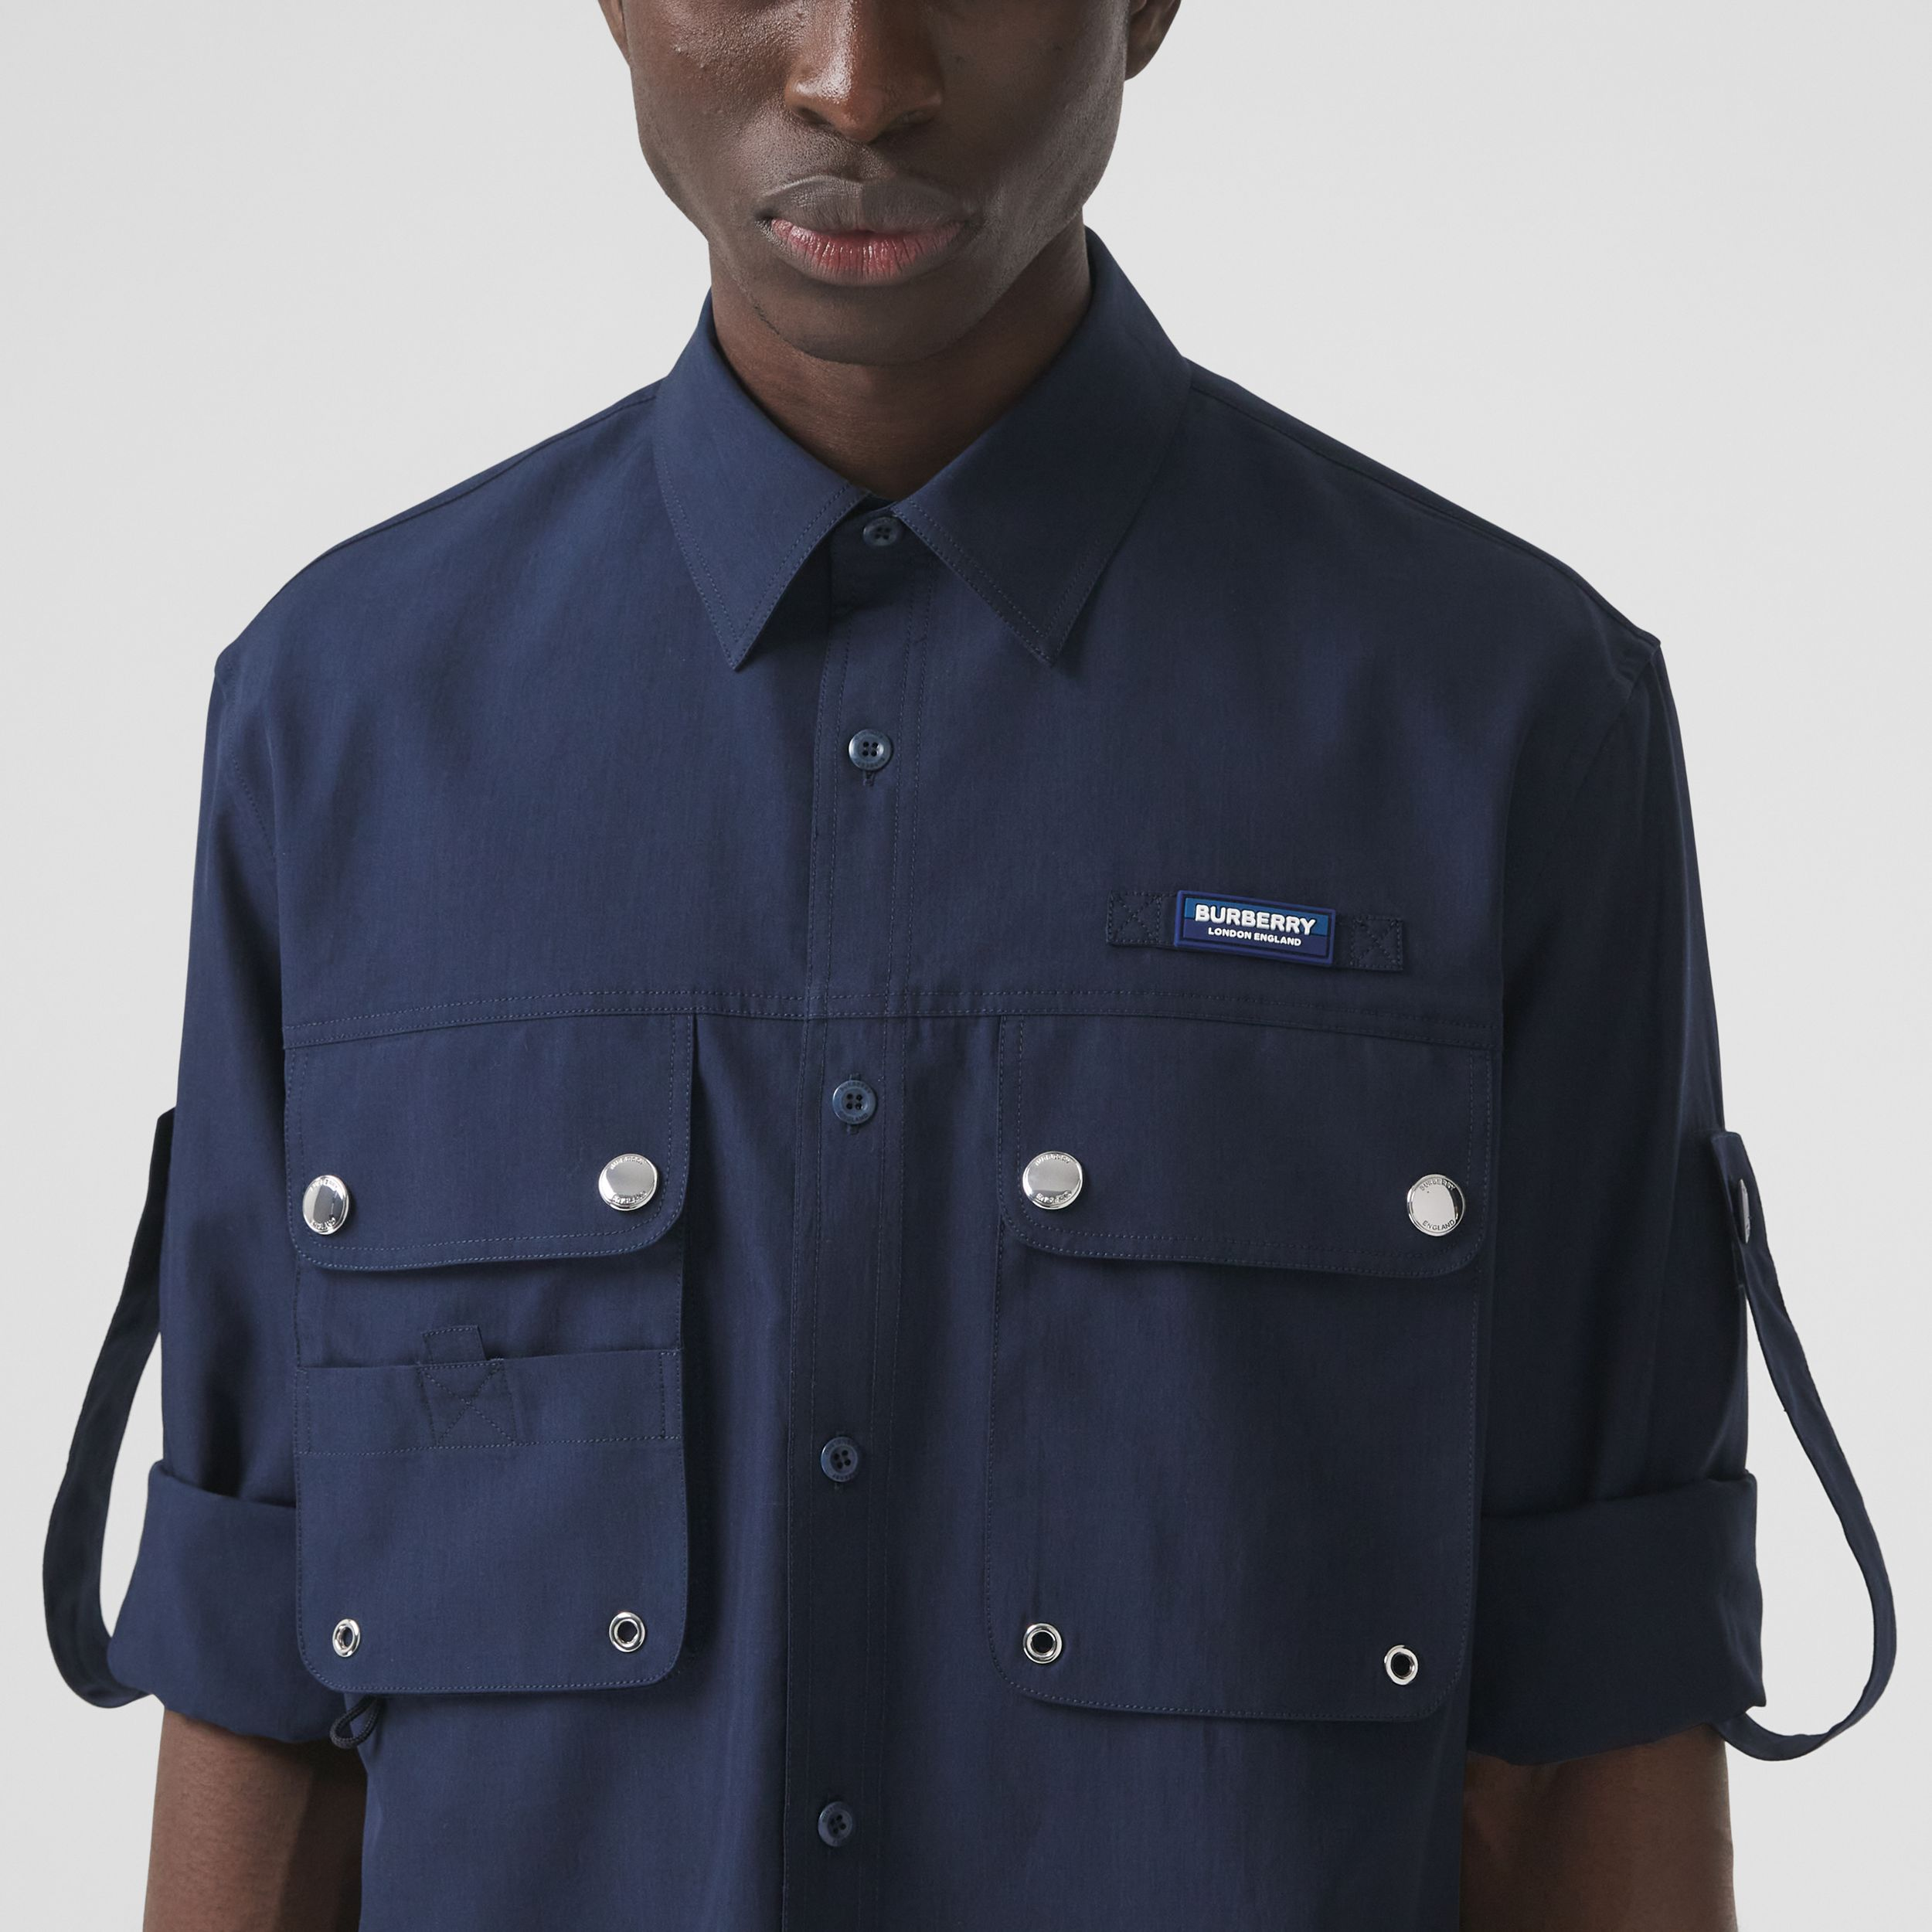 Logo Appliqué Cotton Silk Shirt in Ink Blue - Men | Burberry - 2